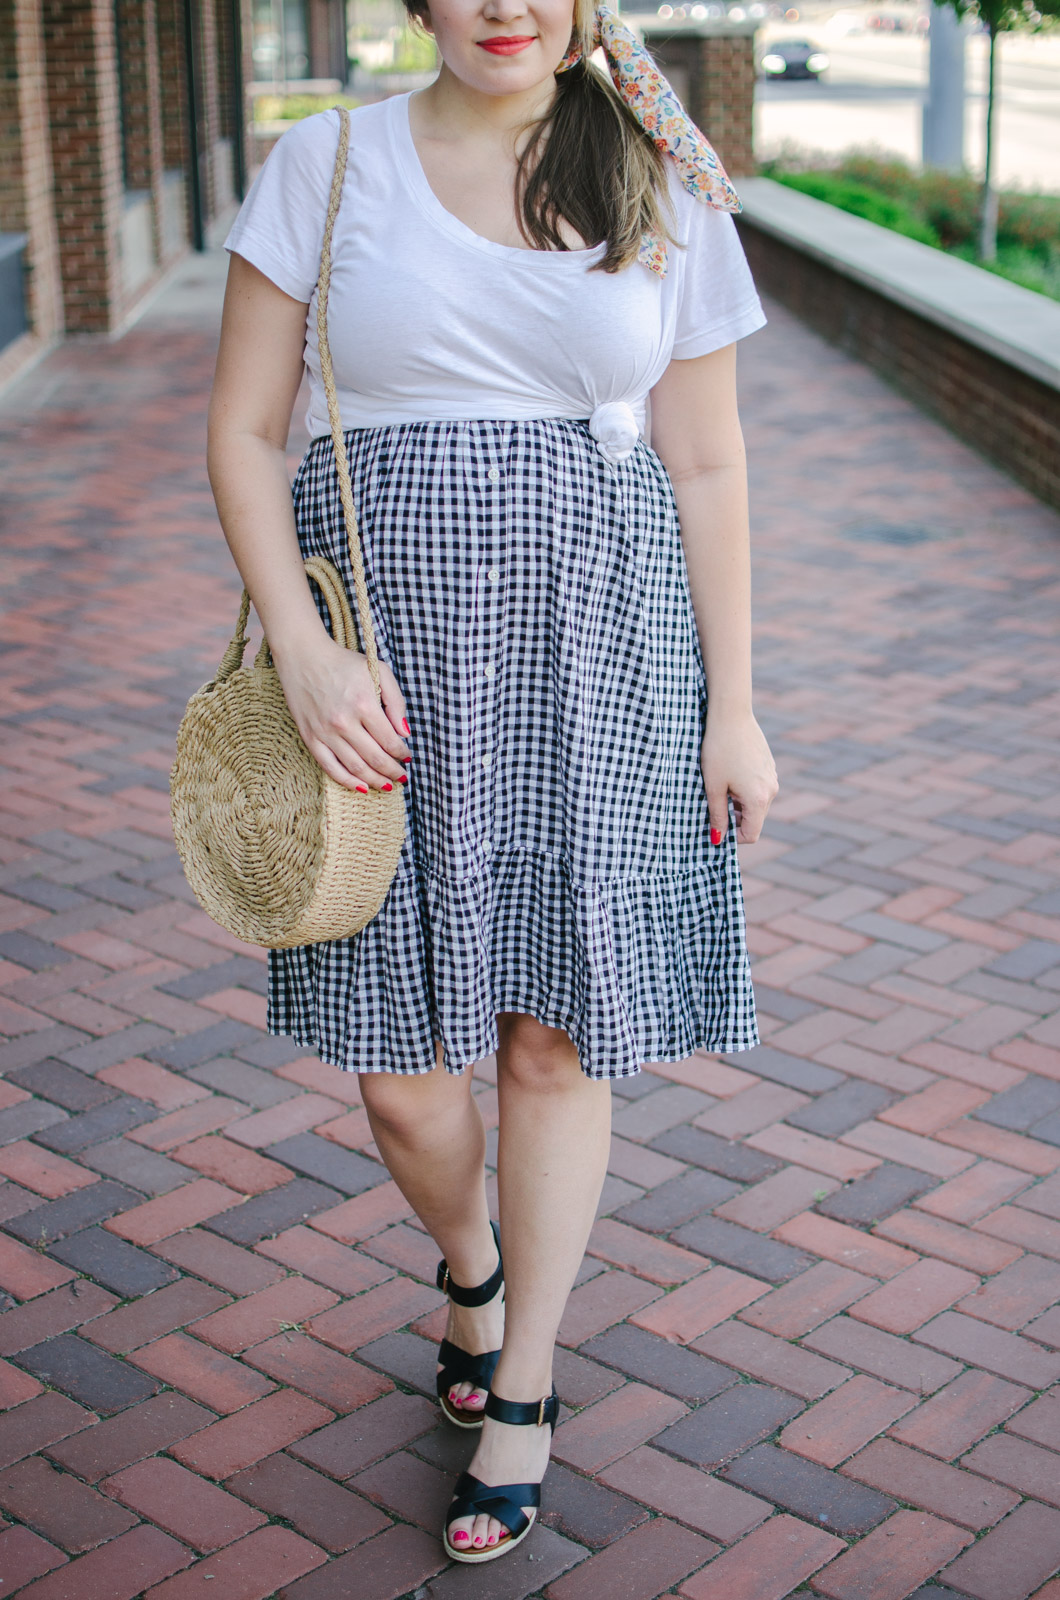 gingham midi skirt with knotted tee pregnancy style - how to wear a midi skirt pregnancy | bylaurenm.com